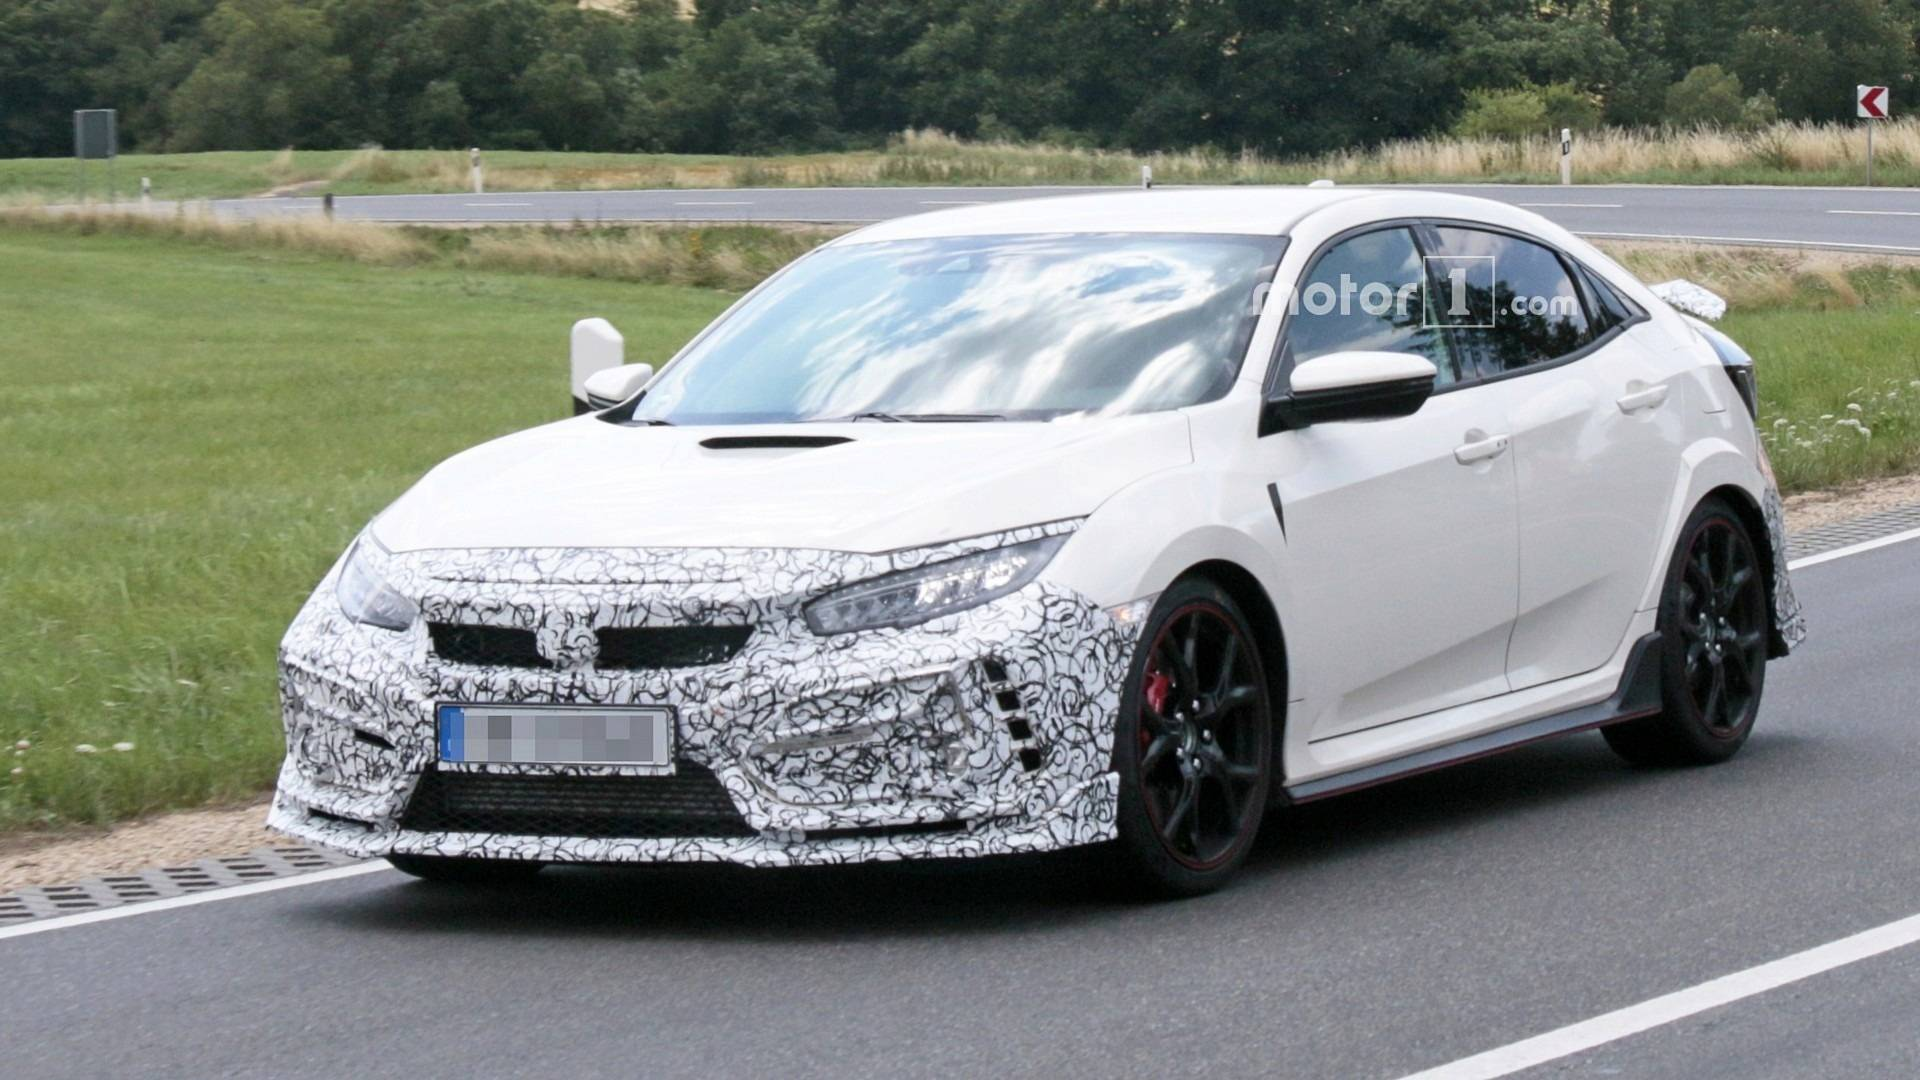 95 The Best 2020 Honda Civic Type R Exterior